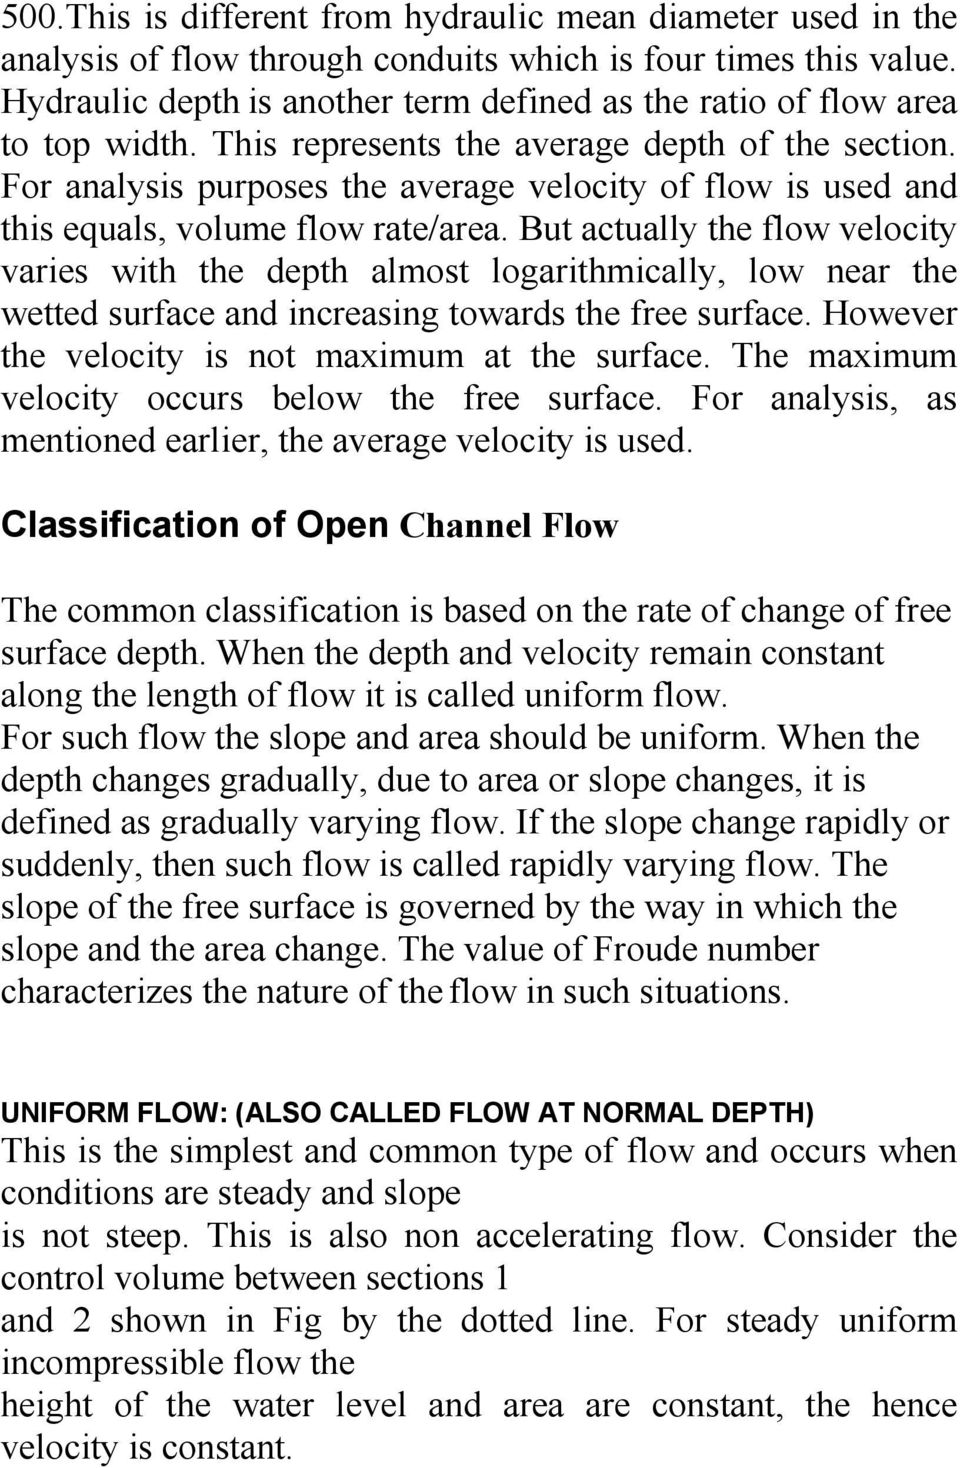 For analysis purposes the average velocity of flow is used and this equals, volume flow rate/area.